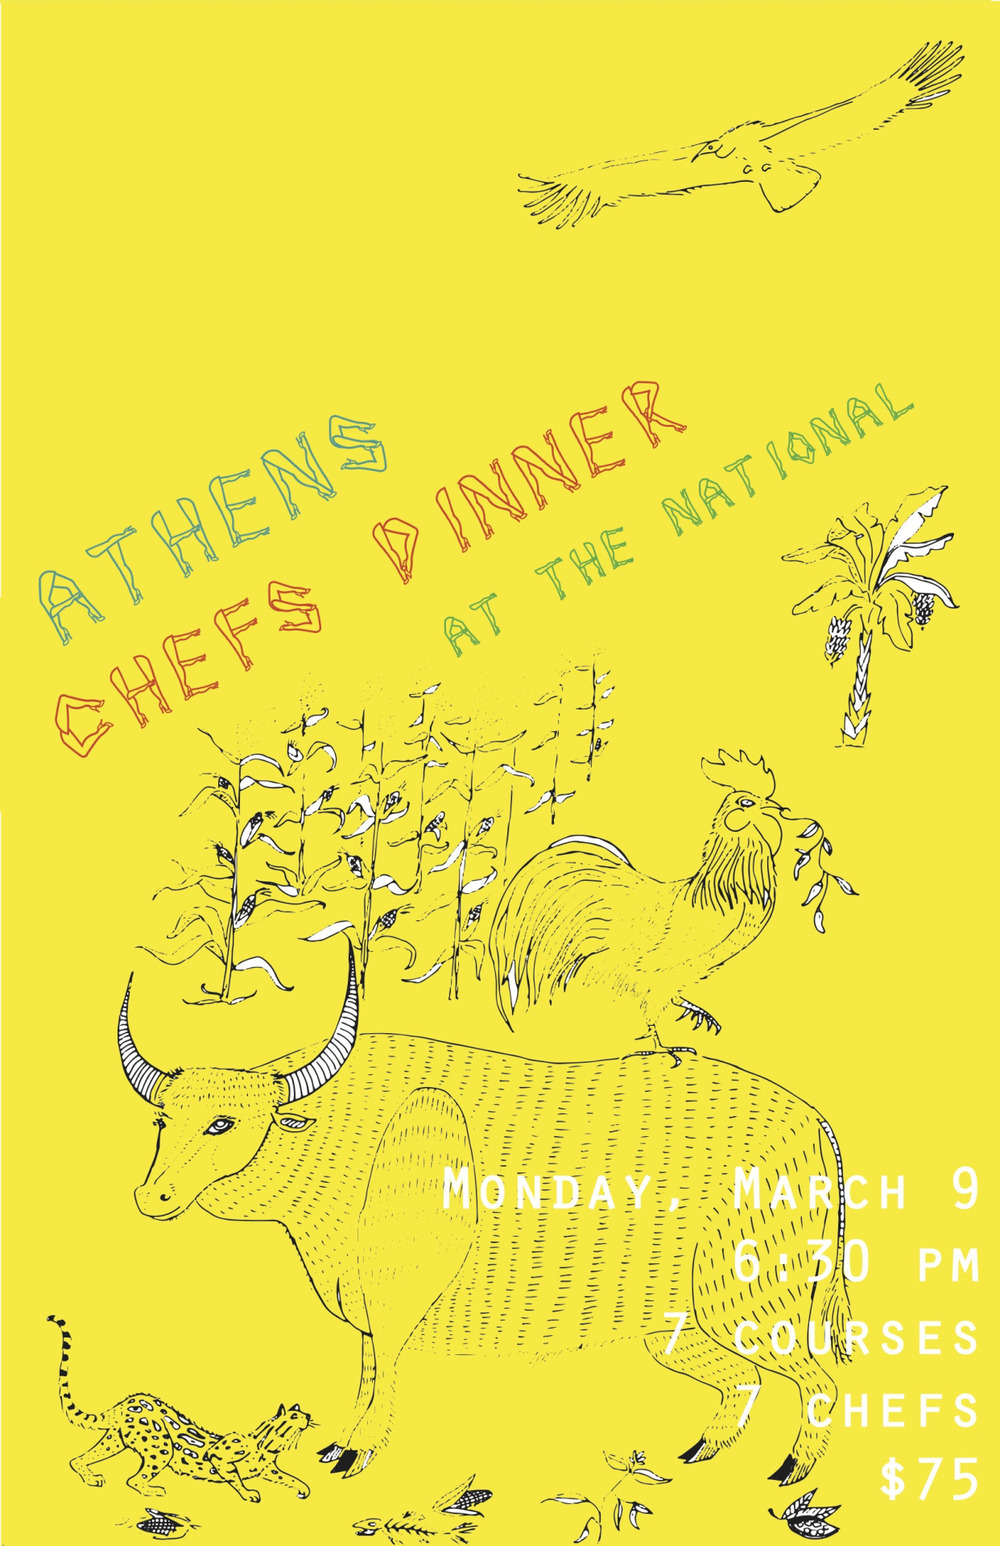 For almost a year,  Athens Chefs Dinners  have been rocking the Classic City, bringing together your favorite local chefs for one night's feast at a different restaurant each time.   Kicking off Spring Break in Athens, The National is hosting 7 chefs for a 7 course dinner with Latin flair featuring included pairings of beer and themed cocktails.    Athens Chefs Dinner at The National Monday, March 9 Seatings at 6:30pm   $75 per guest 7 courses with themed pairings      On the menu…     Amuse   Wes Kent of The National  pork chicharrones    1   Trey Rayburn of The Branded Butcher   scallop ceviche, grapefruit, smoked poblano, citrus gelee, cilantro     2    Jarad Blanton of The Pine   smoked duck, braised midnight bean and green chili cheese pupusas, Curtido, and smoked green tomato and jalapeño salsa     3    Lenny Miller of Preserve   fried squid, stout-braised chorizo, papaya salsa      4    Mimi Maumas of home.made   cachapas, chile braised chicken, queso fresco, tangerine, chimol    5    Joel Penn of The National    beef lengua smoked over cocoa husk, mole negro oaxaqueno, hominy, pickled nopales, smoked condor bitter chocolate    6   Chuck Ramsey of Pulaski Heights BBQ   cochinita pibil    7    Jason Zygmont of 5&10   burnt banana ice cream, green tomato cake, dry chili spiced nuts, sesame puff, cocoa powder  For reservations, call 706-549-3450 or email at reservations@thenationalrestaurant.com.  Don't wait! These dinners are known to sell out!